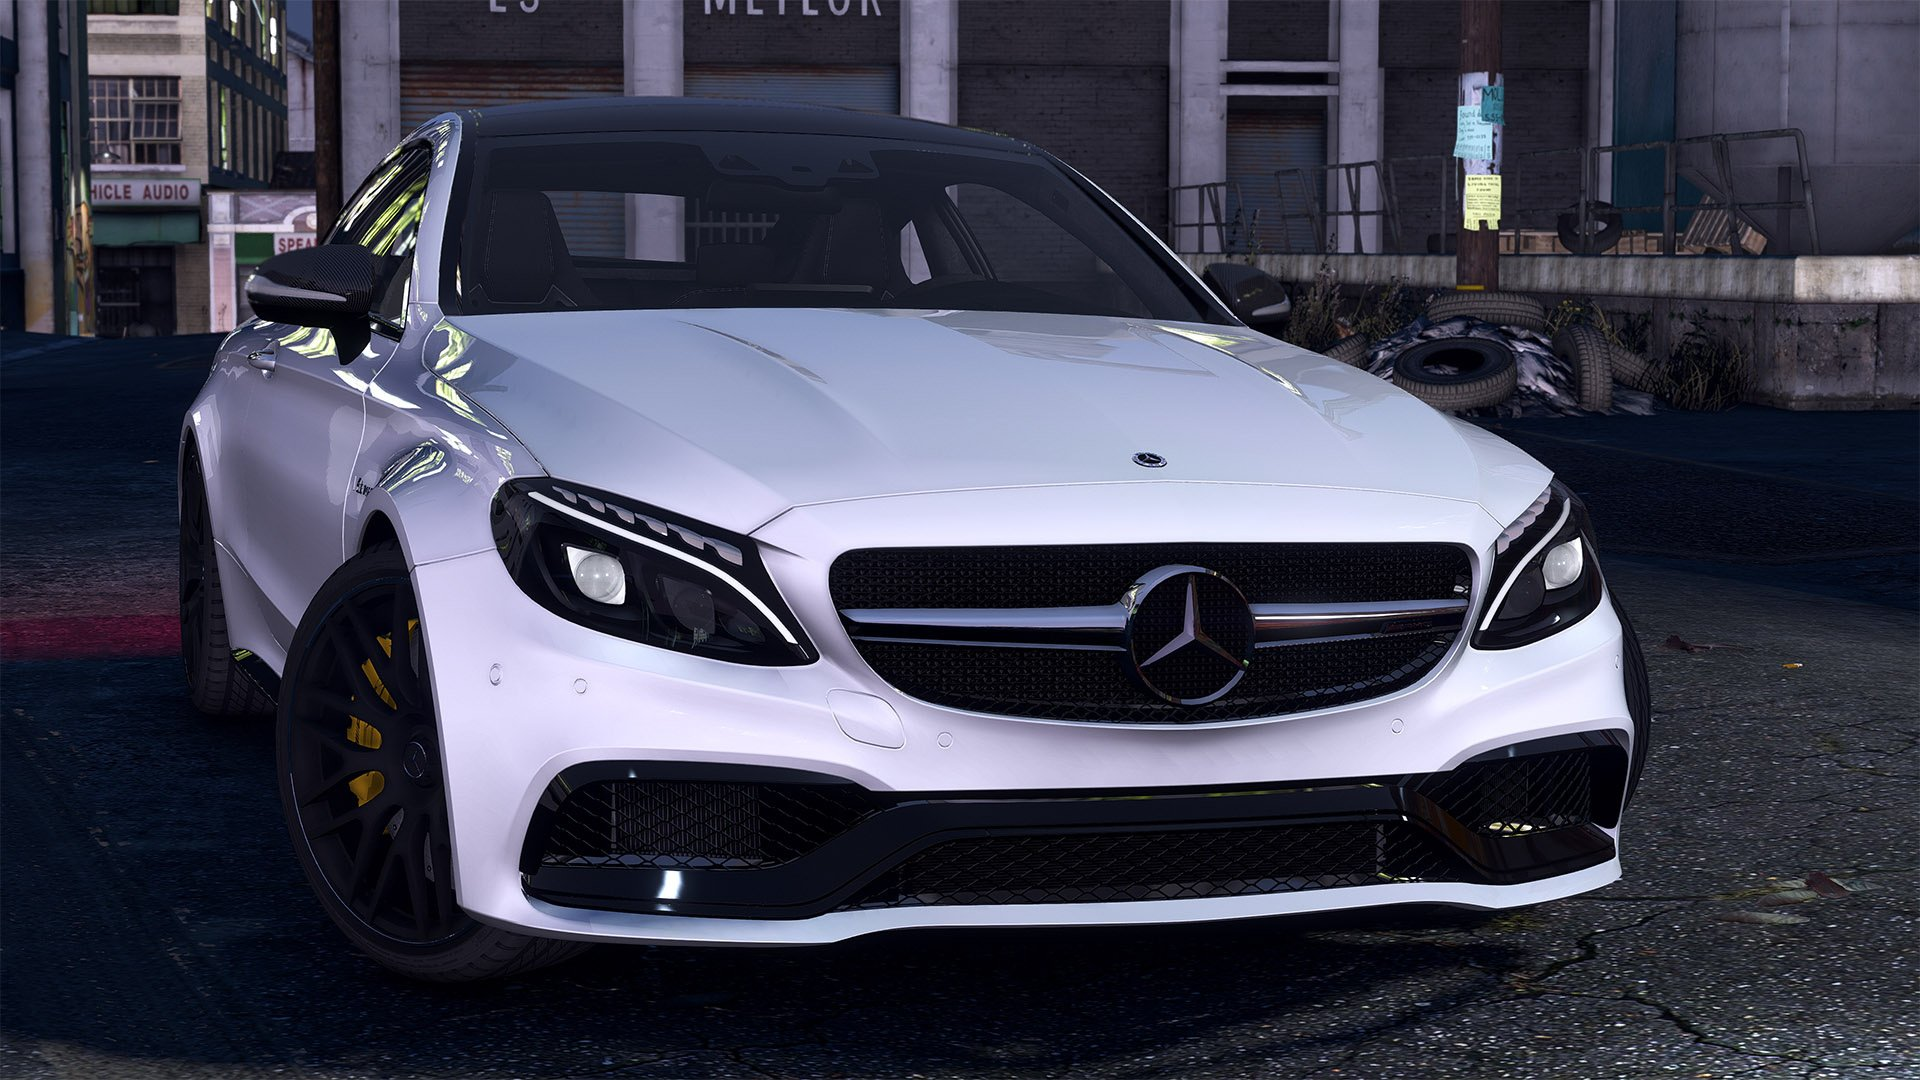 2016 mercedes c63 amg s coupe add on replace animated analog digital dials gta5. Black Bedroom Furniture Sets. Home Design Ideas